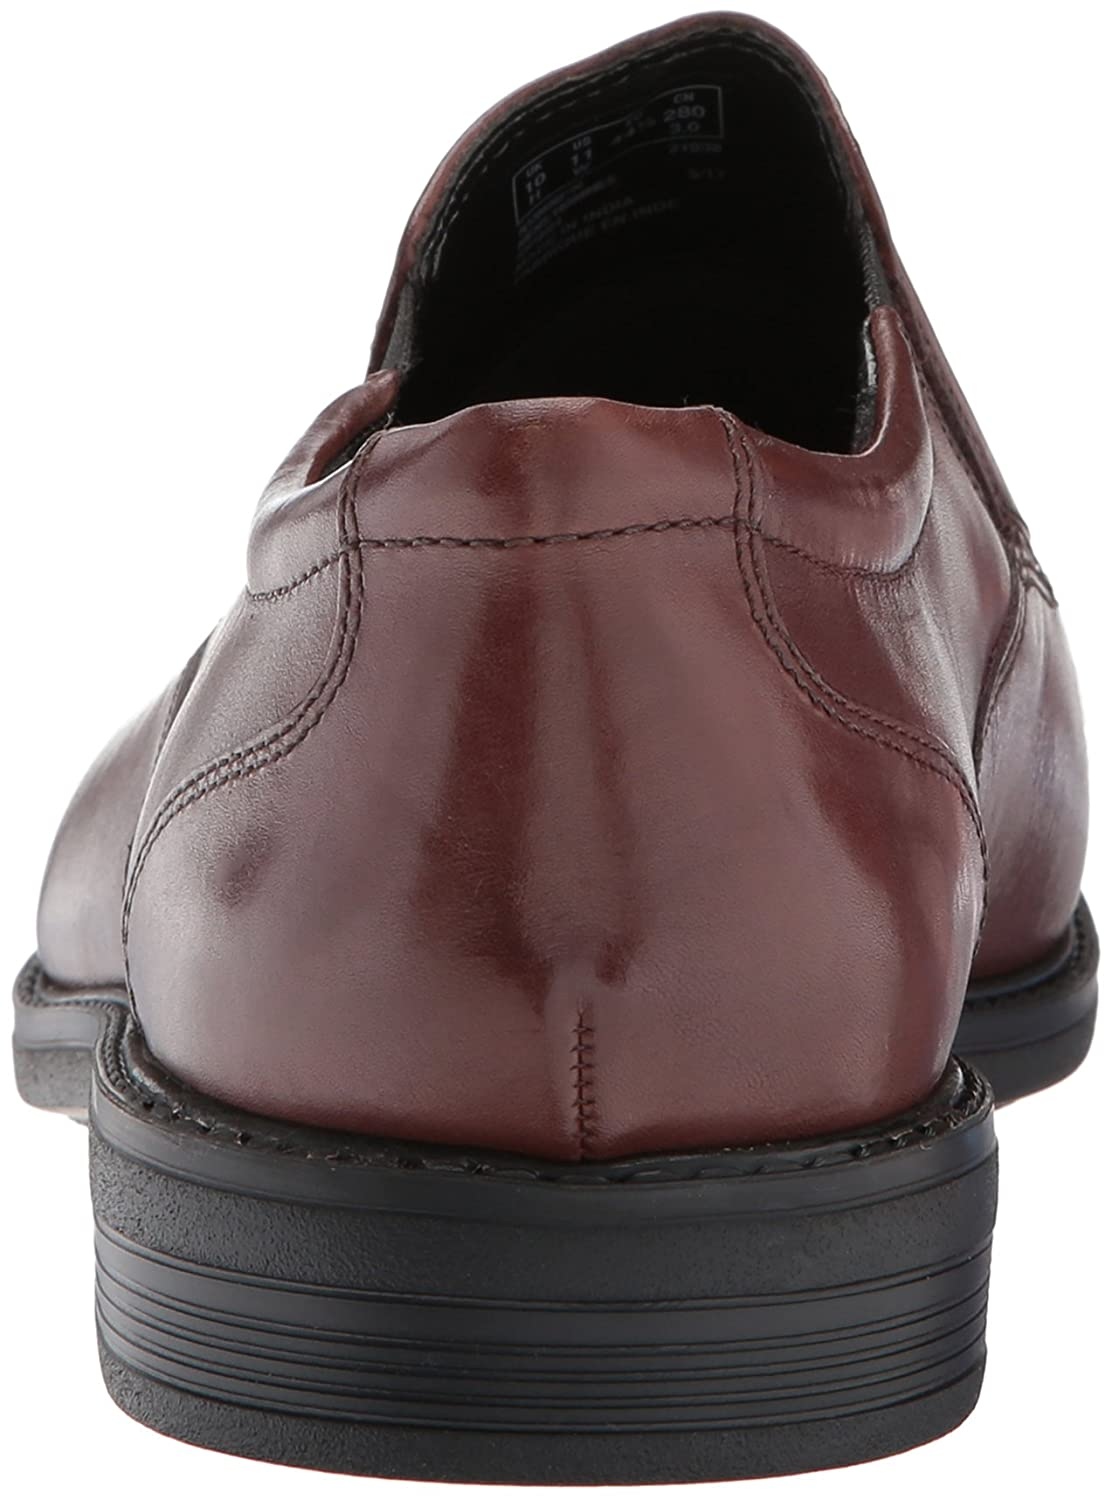 Bostonian B01NCUIG16 Men's Bolton Free Oxfords 14 M US|Brown B01NCUIG16 Bostonian f330af